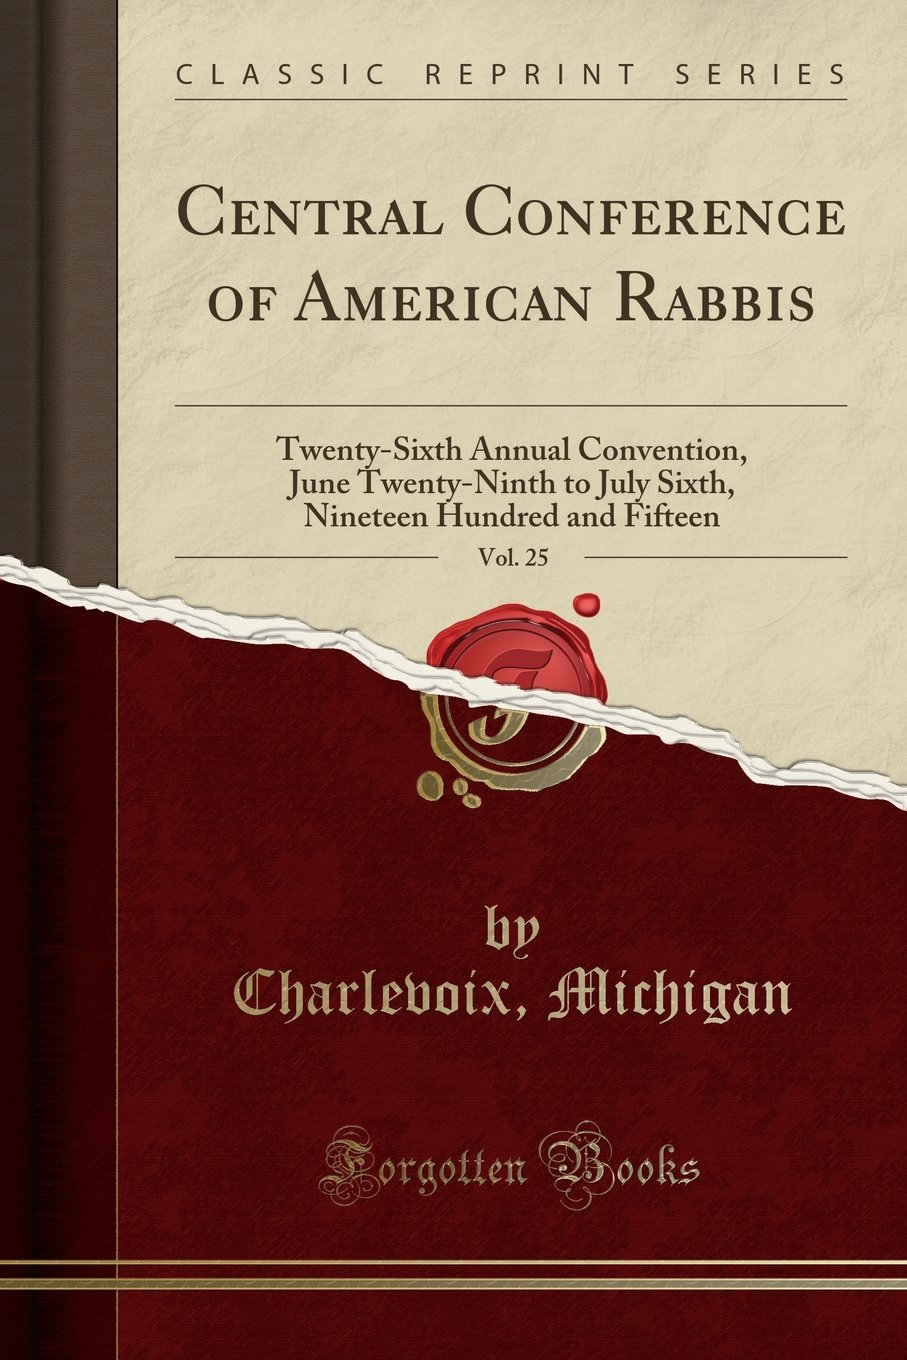 Download Central Conference of American Rabbis, Vol. 25: Twenty-Sixth Annual Convention, June Twenty-Ninth to July Sixth, Nineteen Hundred and Fifteen (Classic Reprint) PDF